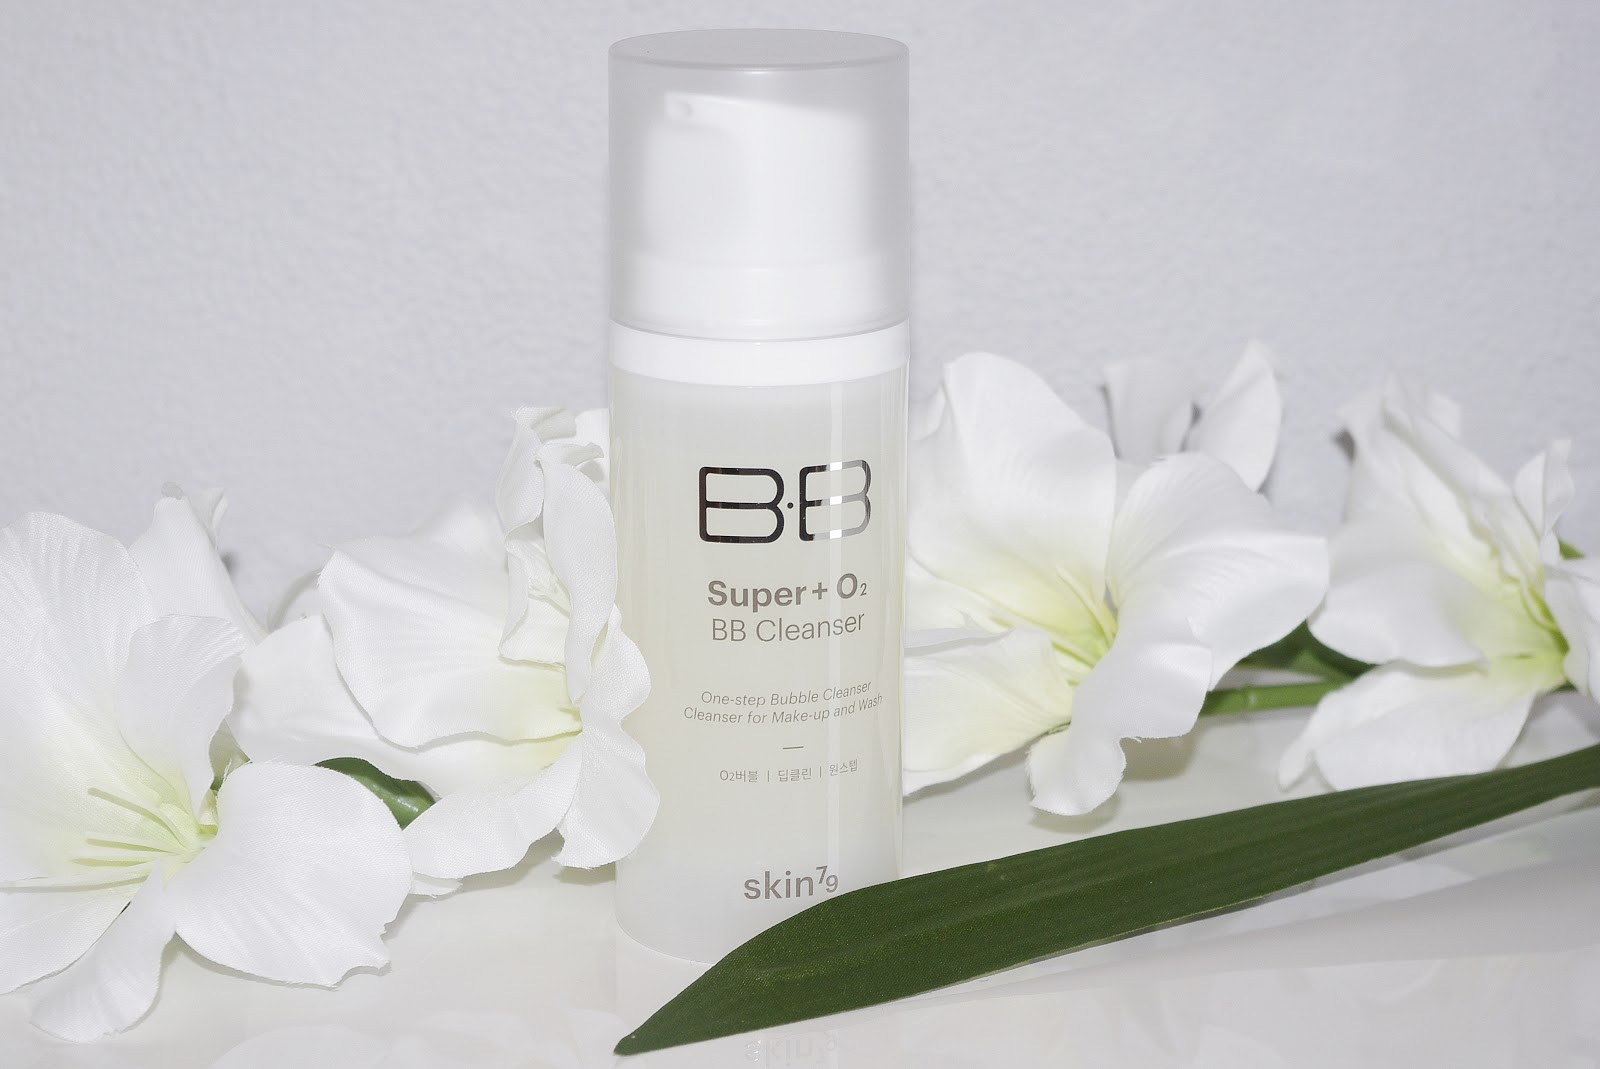 Super+ O2 BB Cleanser Skin79